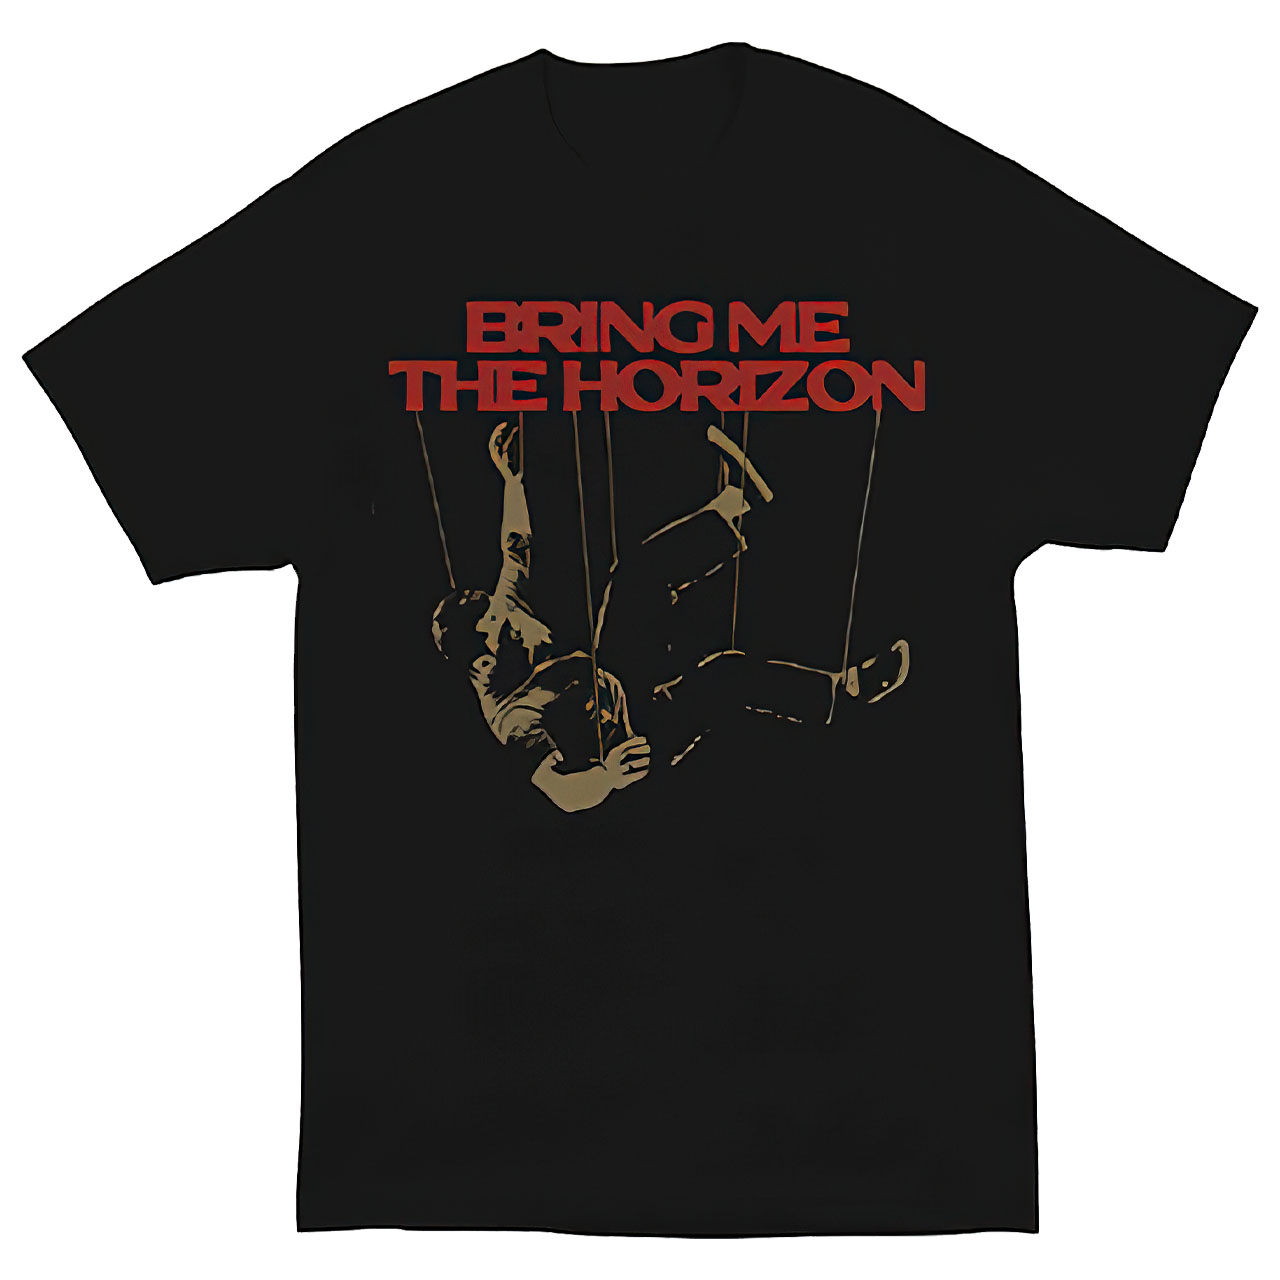 BRING ME THE HORIZON Wipe The System Tshirt